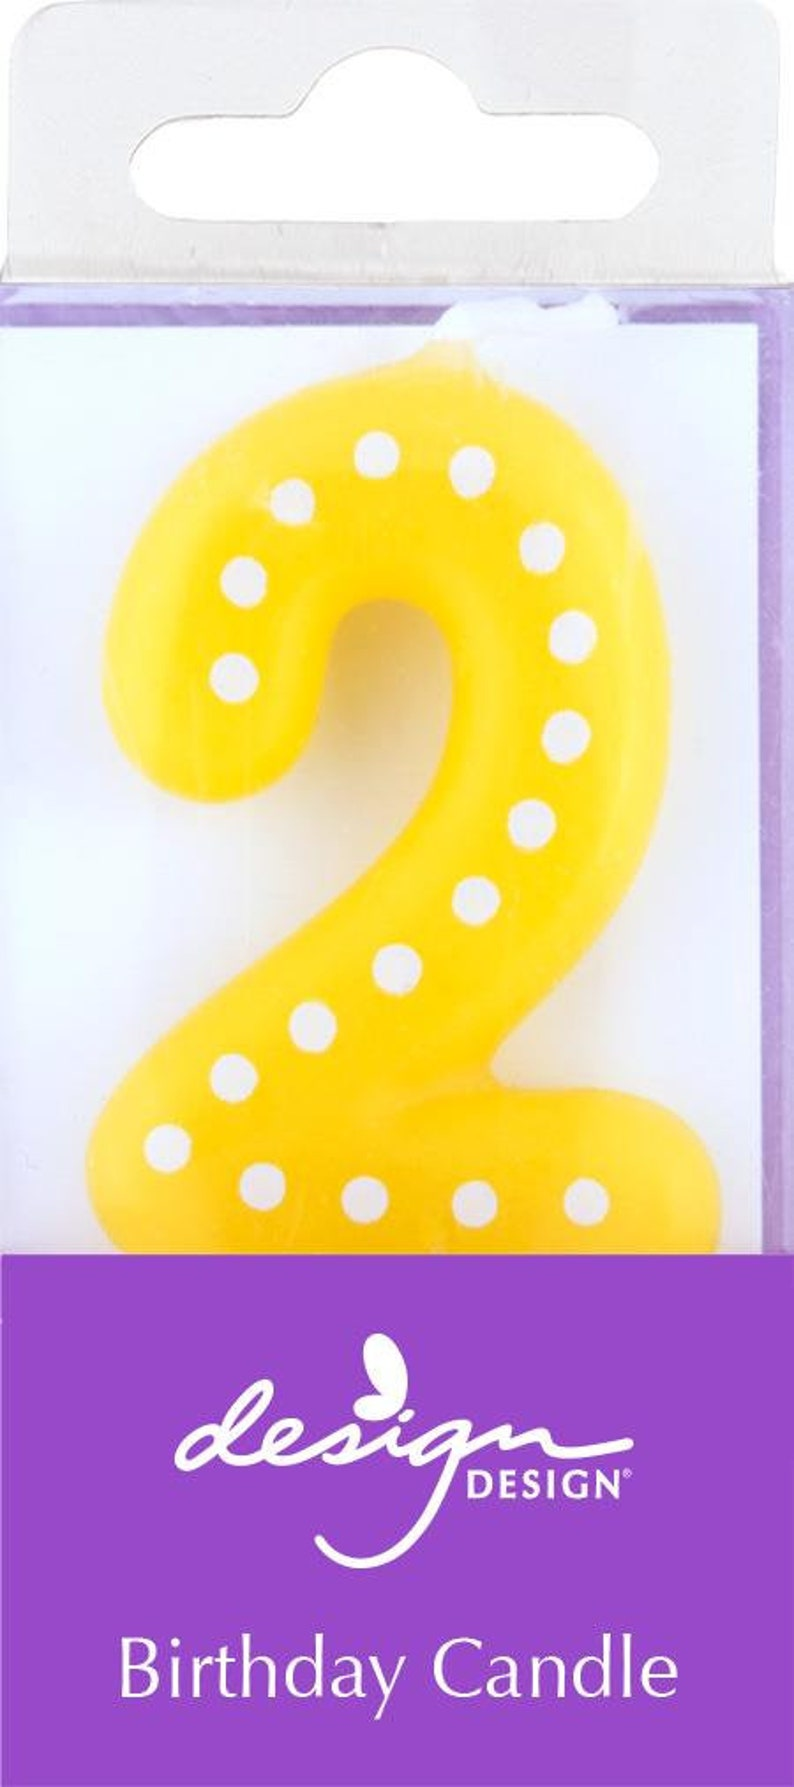 Girl Candles Polka  Dot Number Birthday Candles Orange One Yellow Red Boy Birthday Number Candles Birthday Candle Blue Green